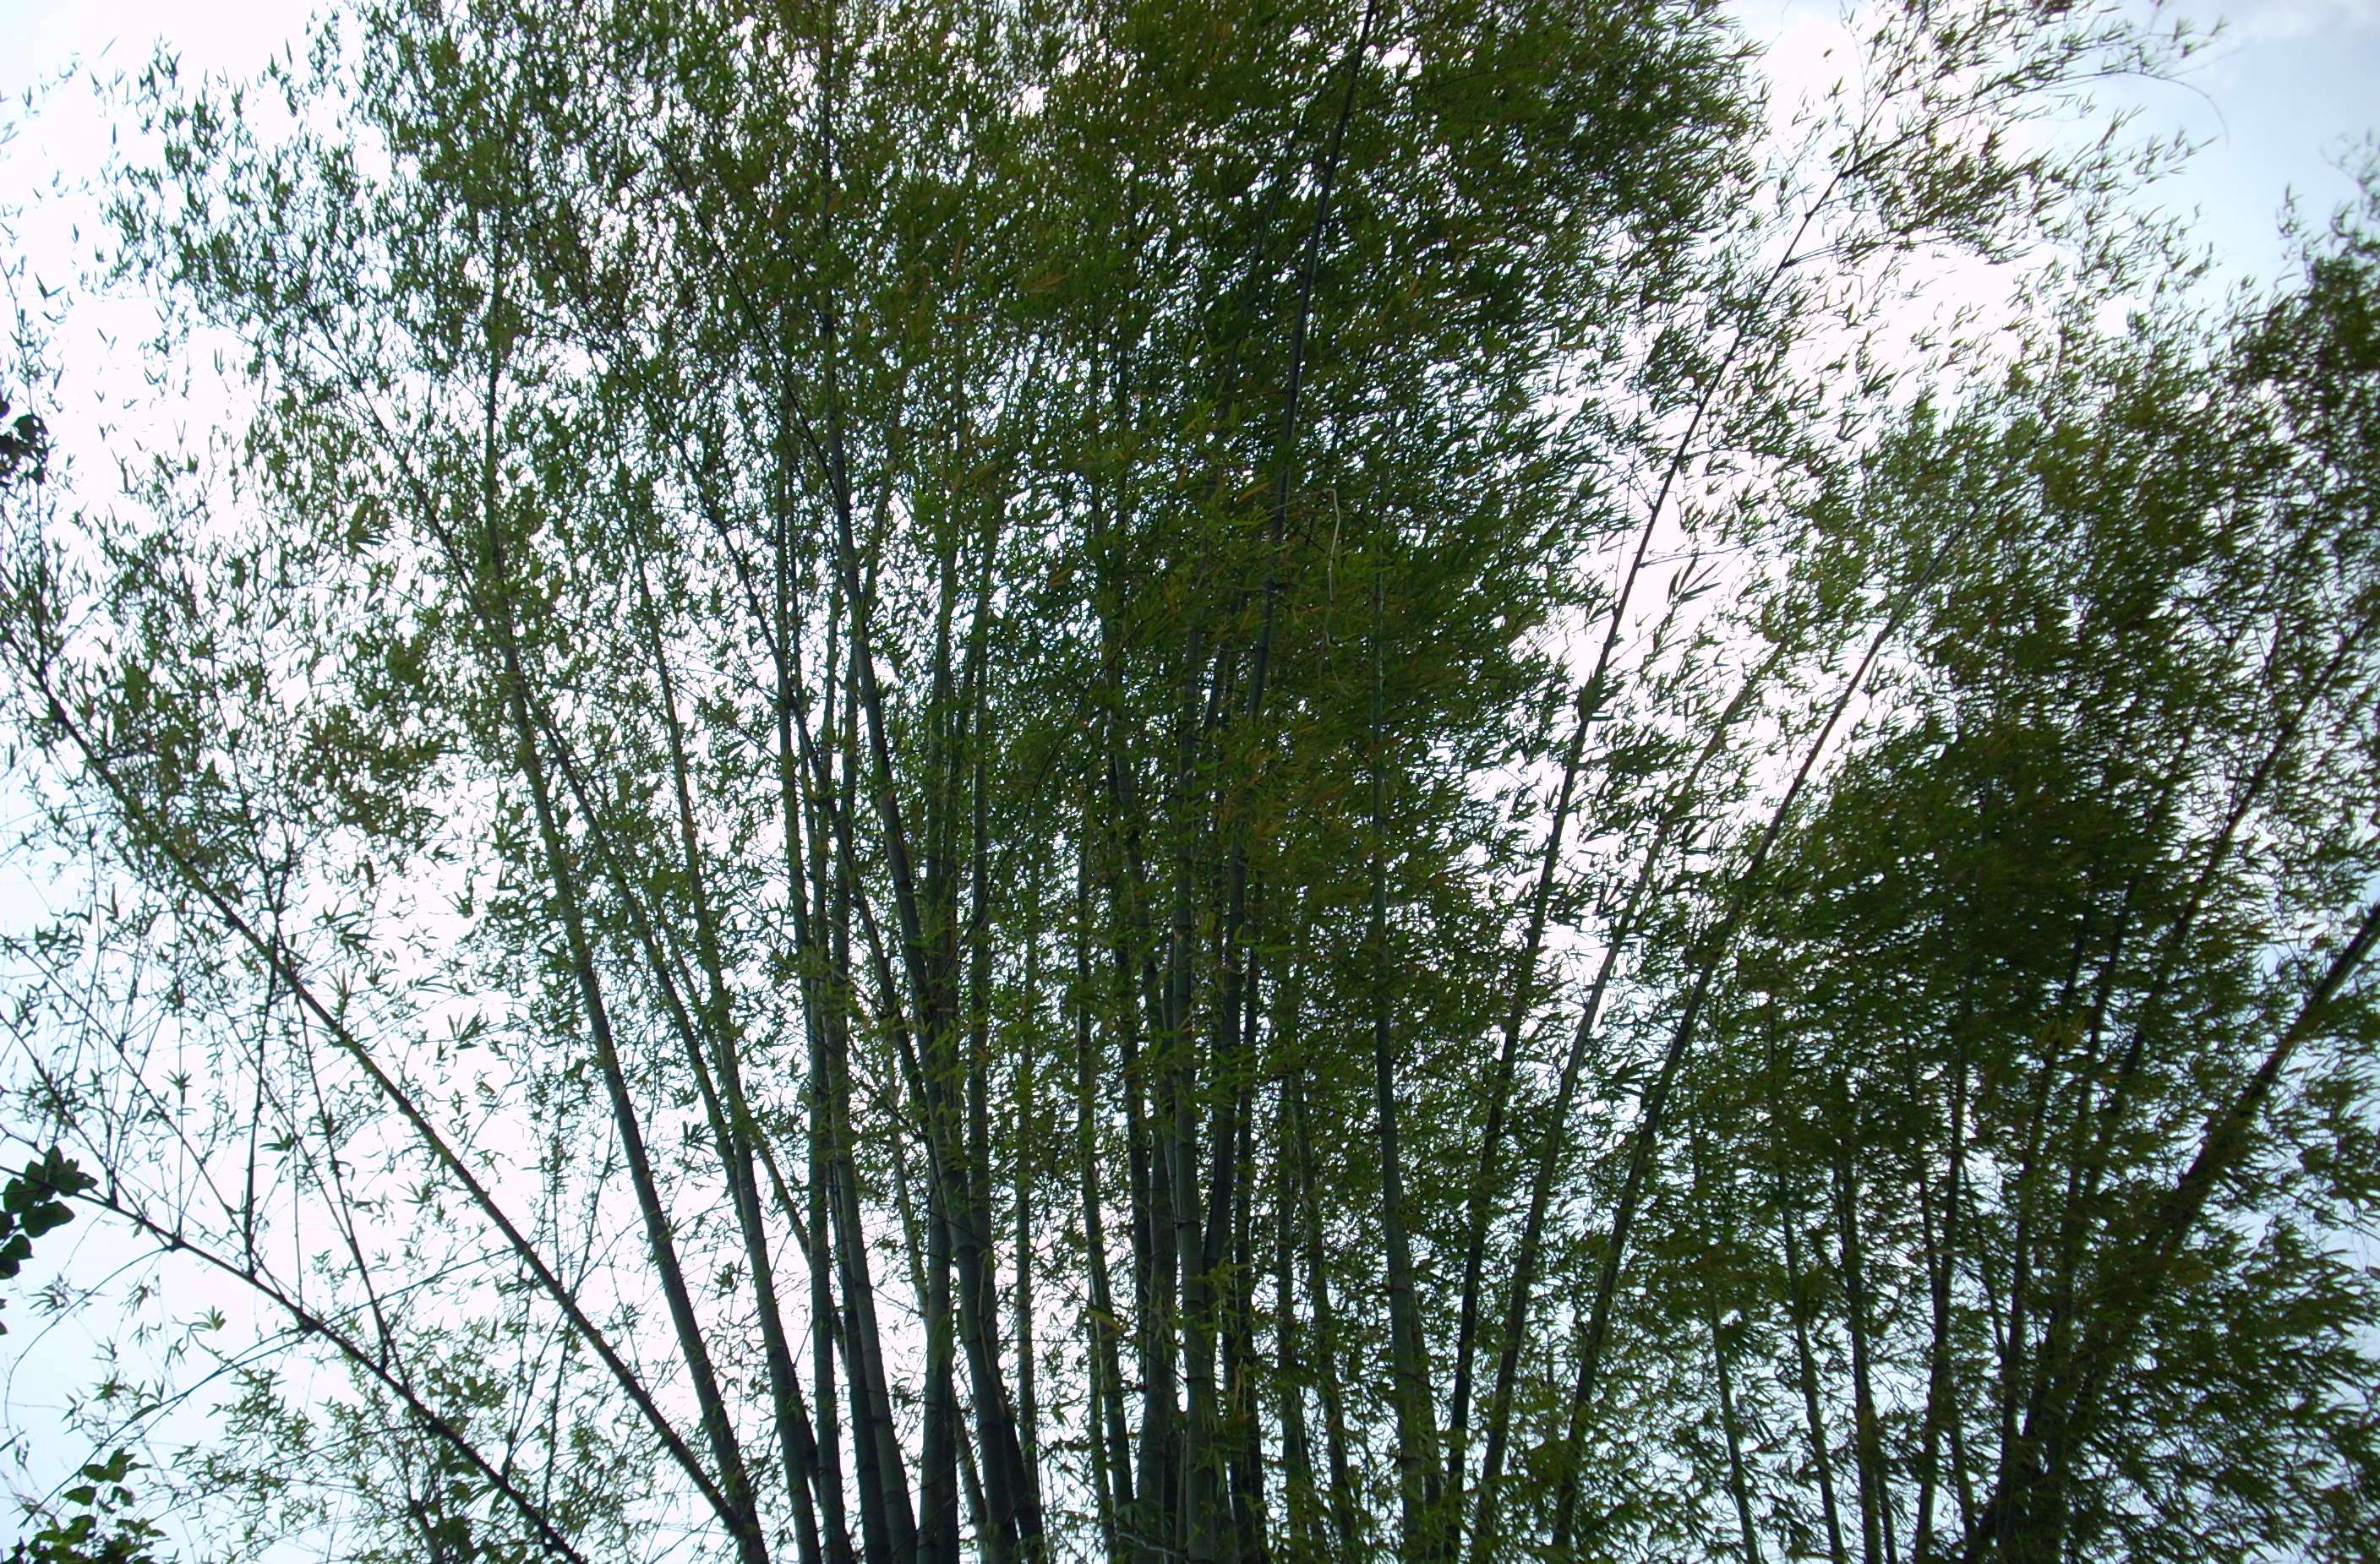 Top of the Trees, Blow, Branches, Green, Leafs, HQ Photo